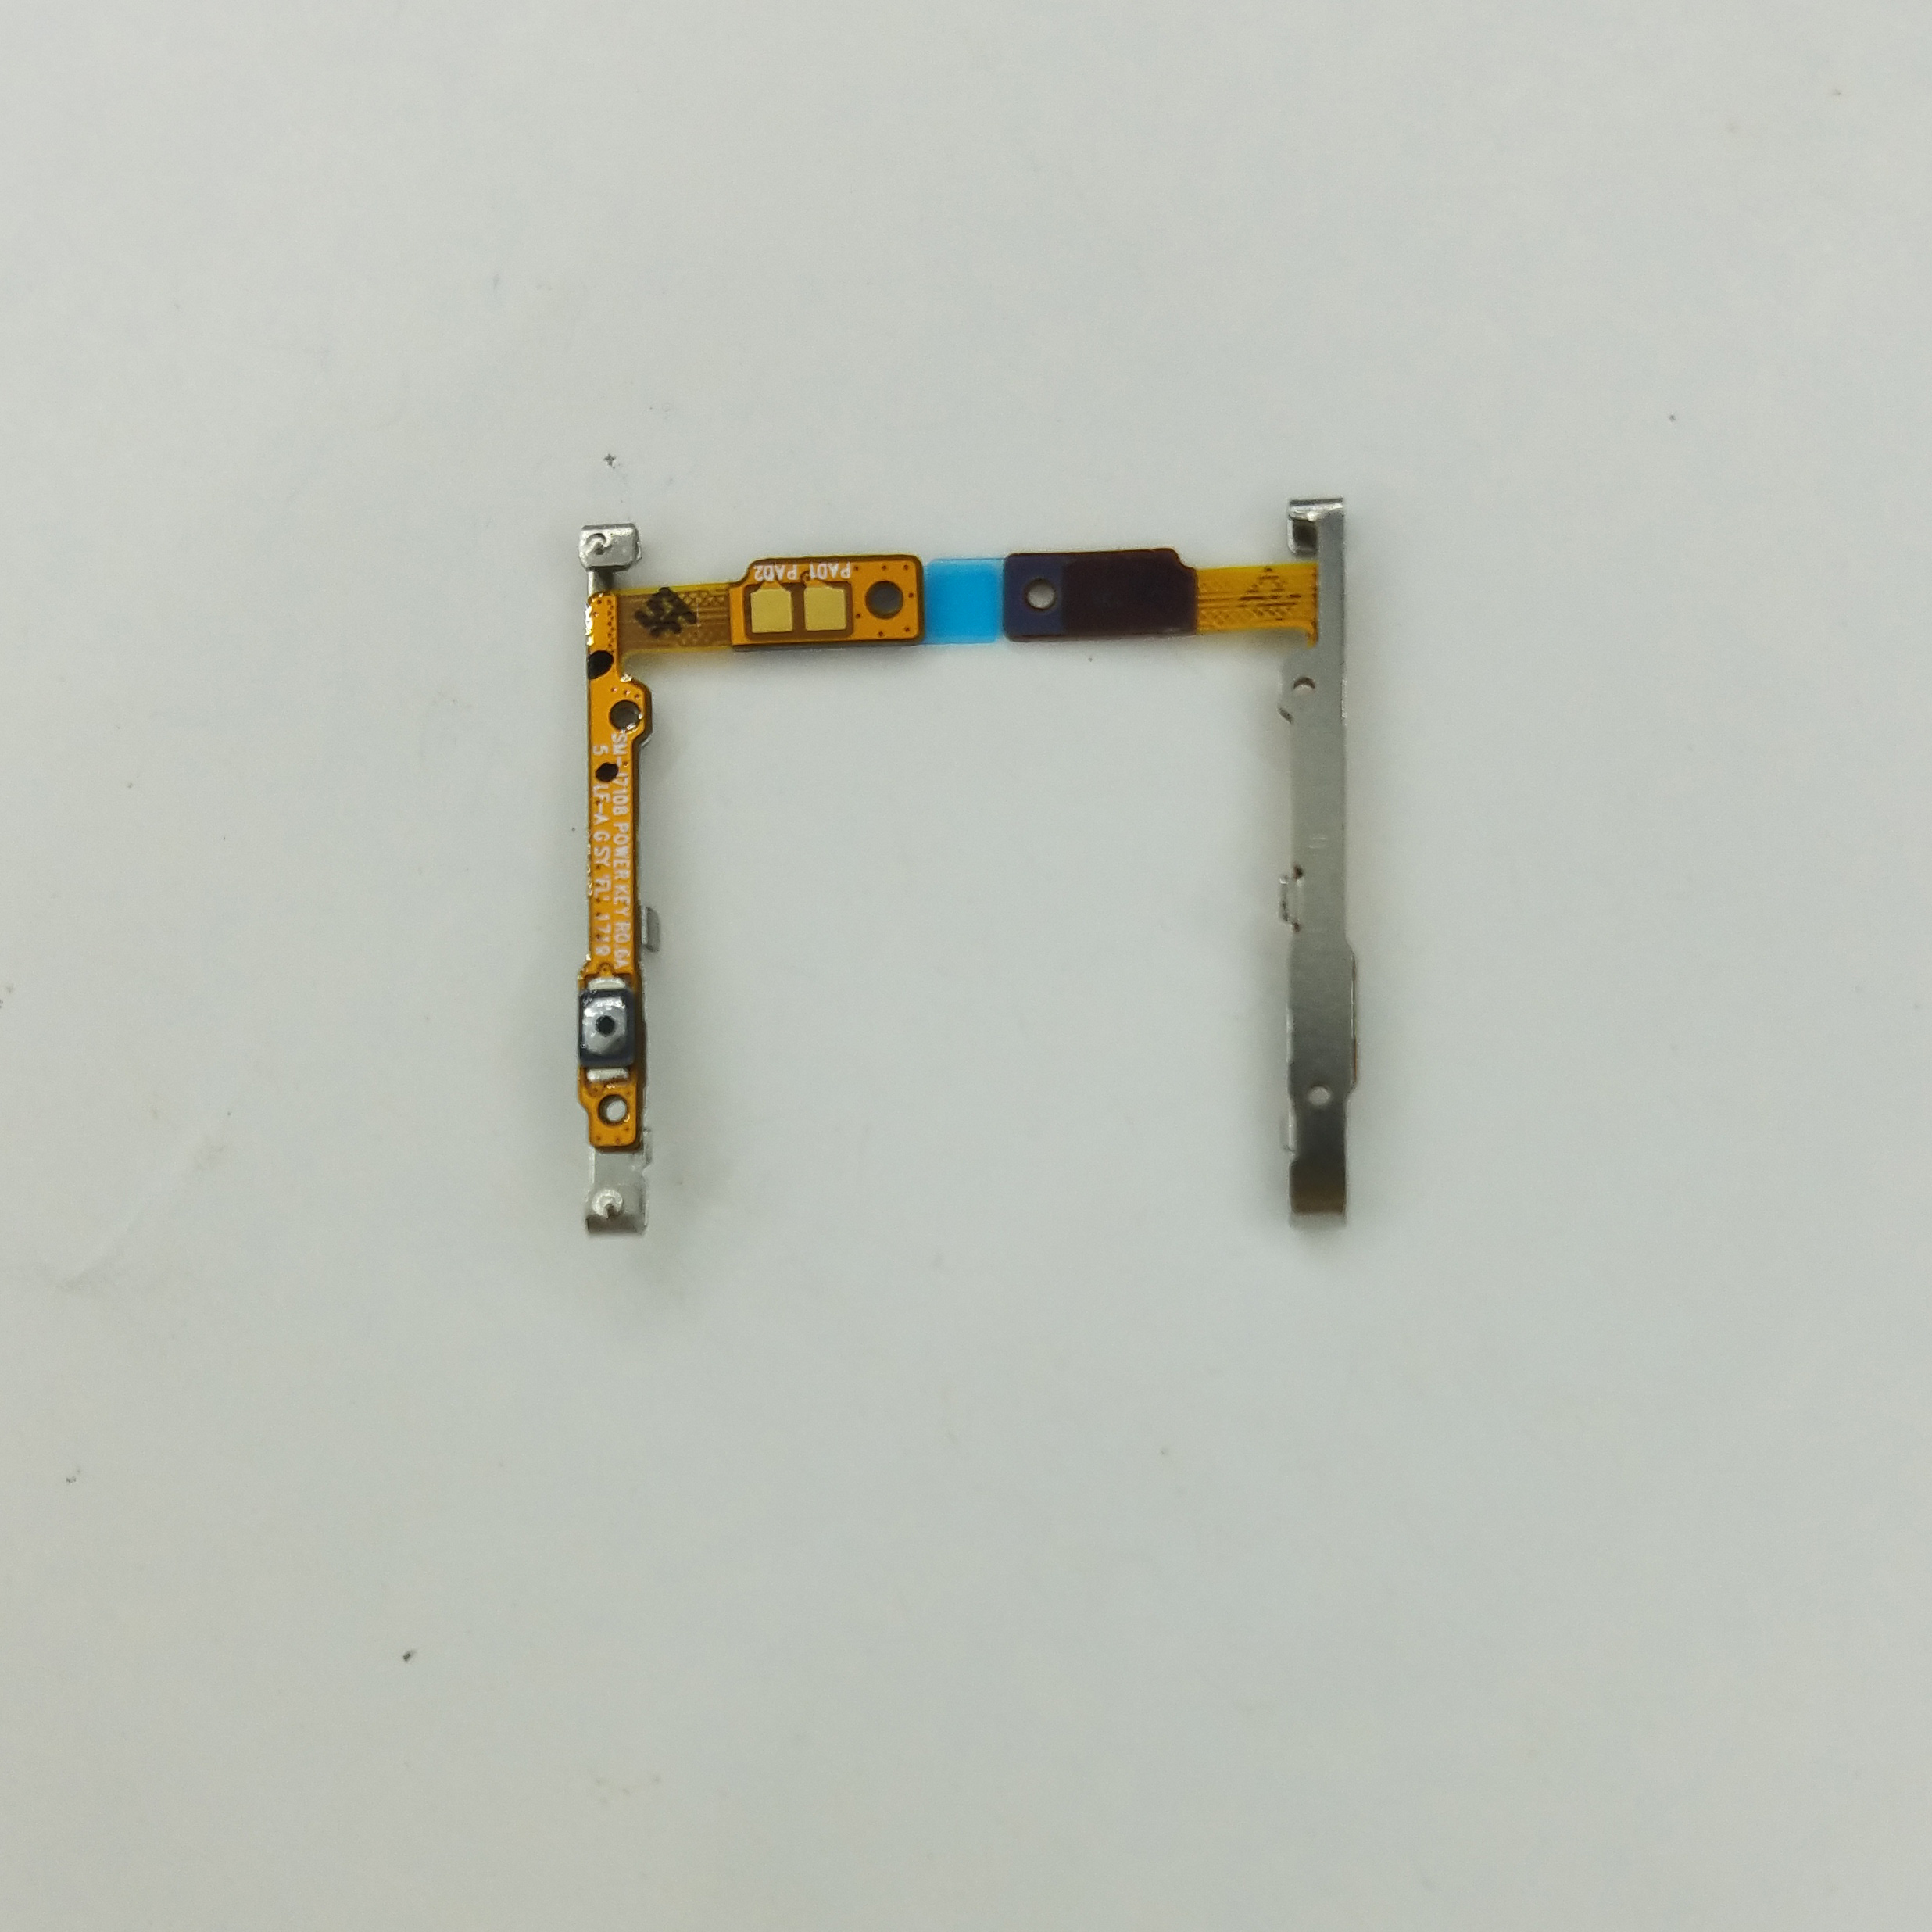 For Samsung Galaxy J7 2016 J710 J710F J710FN J710H J710M J710G Original Phone Housing New Power Button On Off Key Flex Cable